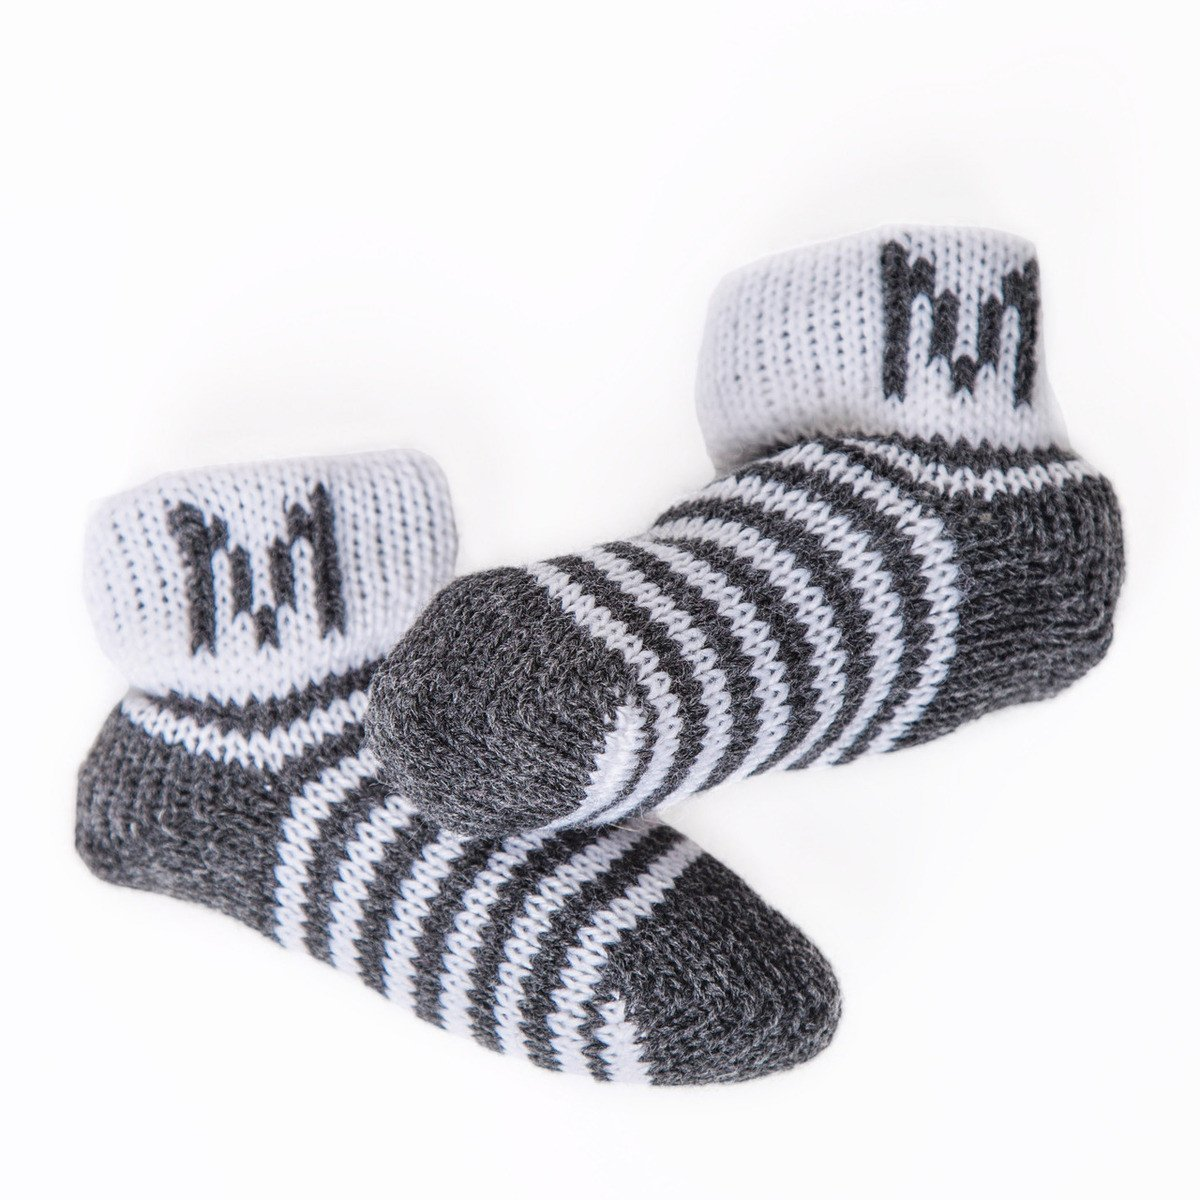 Stripes & Initial Personalized Booties-Booties-Default-Jack and Jill Boutique